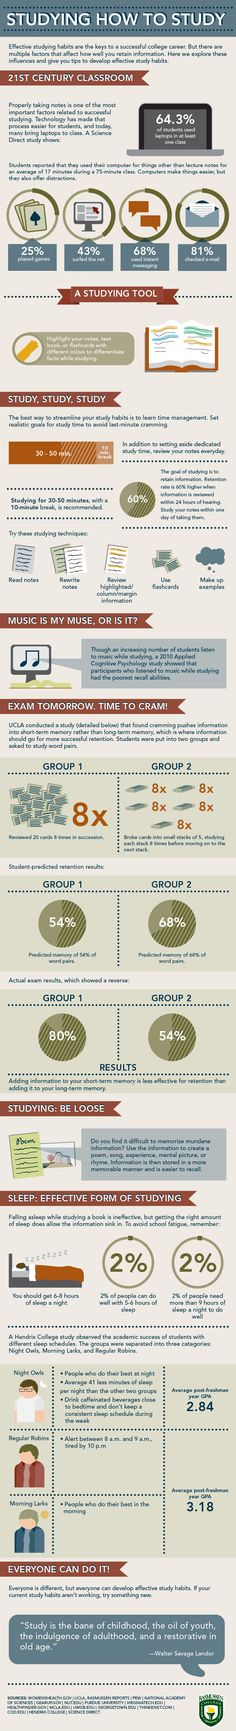 Do you have effective #studying #habits? #Infographic